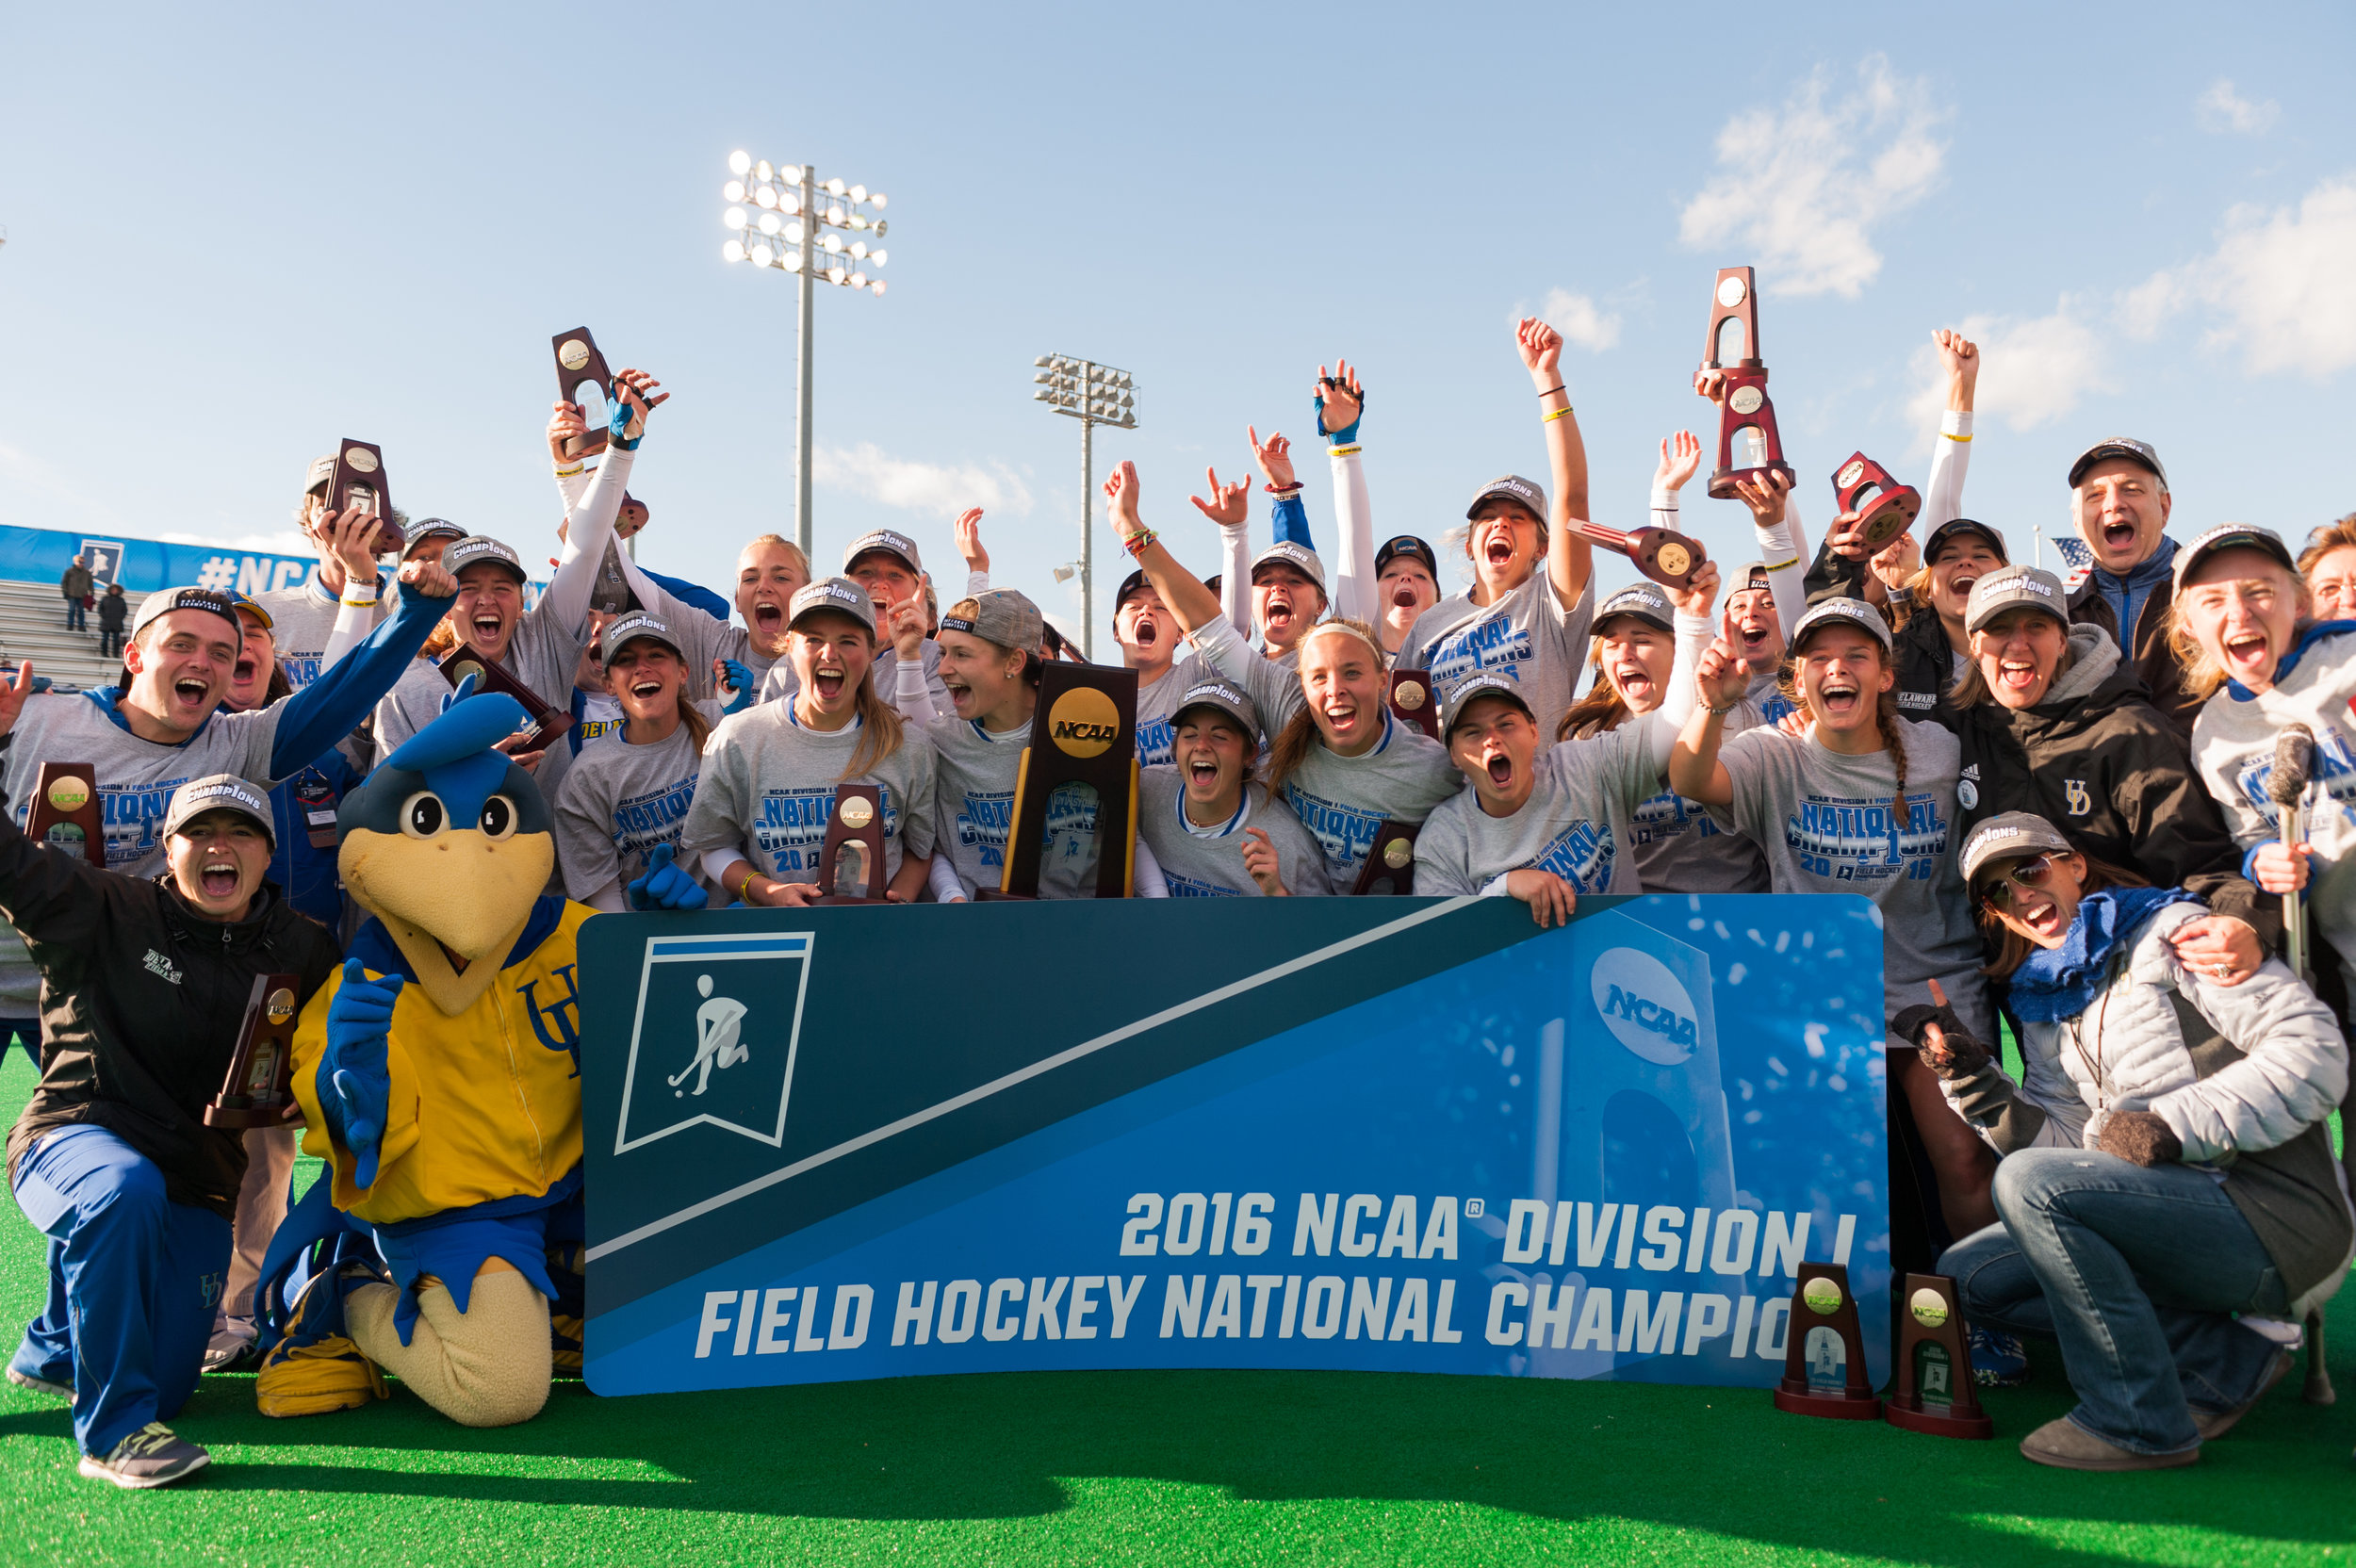 Delaware Blue Hens players celebrate after defeating the North Carolina Tar Heels during the 2016 NCAA DI National Championship at the L.R. Hill Sports Complex in Norfolk, VA. Delaware defeated North Carolina 3-2.